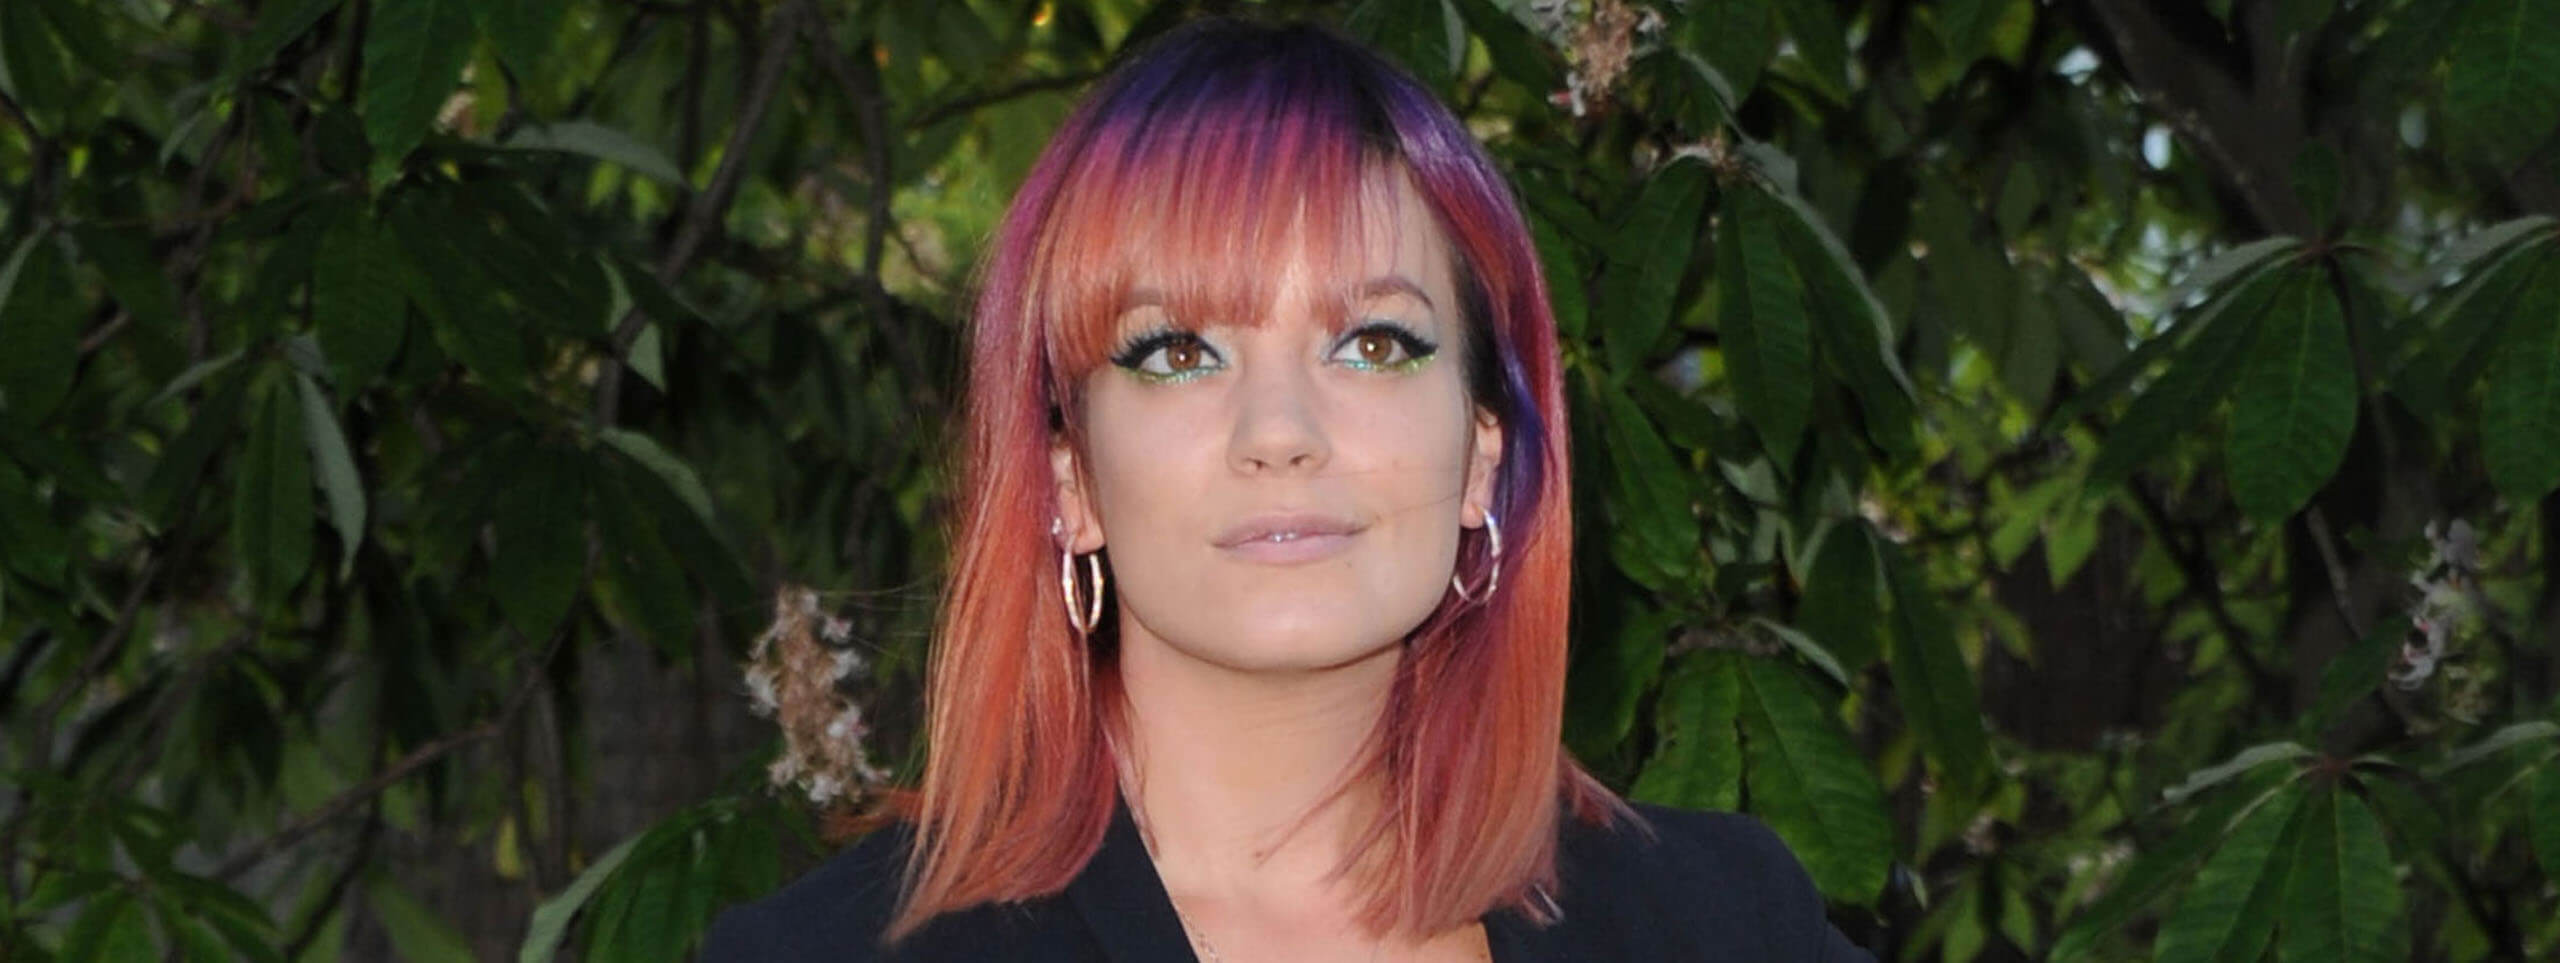 dye-hair-multicolored